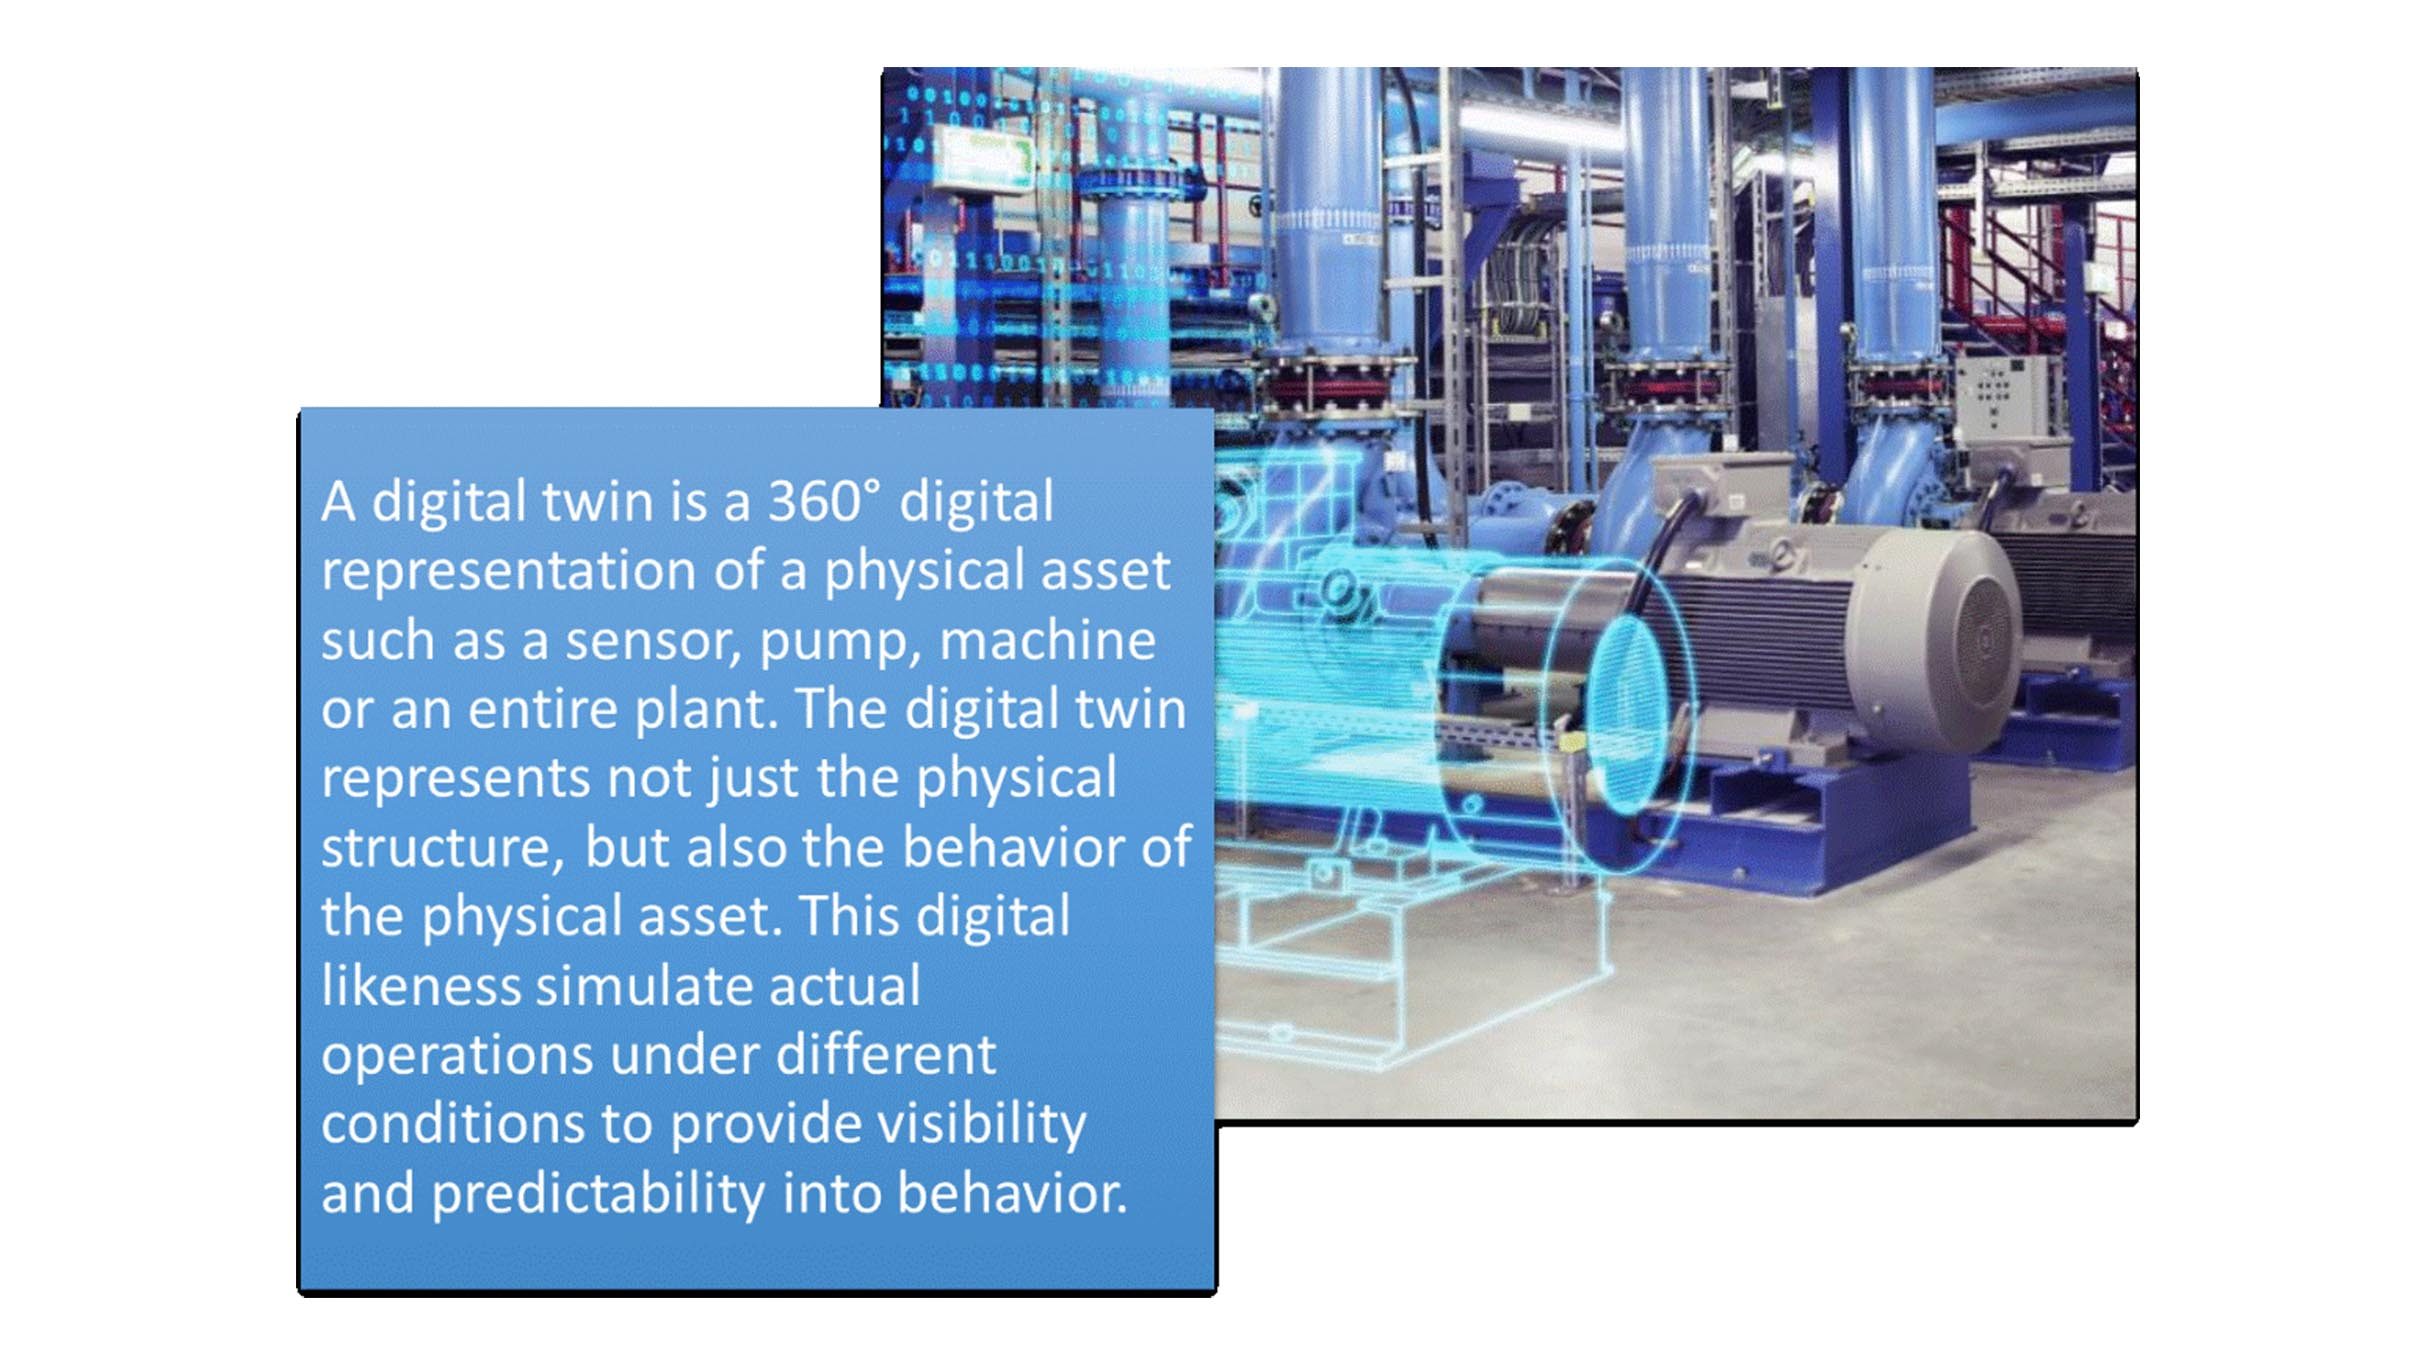 Next Generation MES Technologies include digital twins